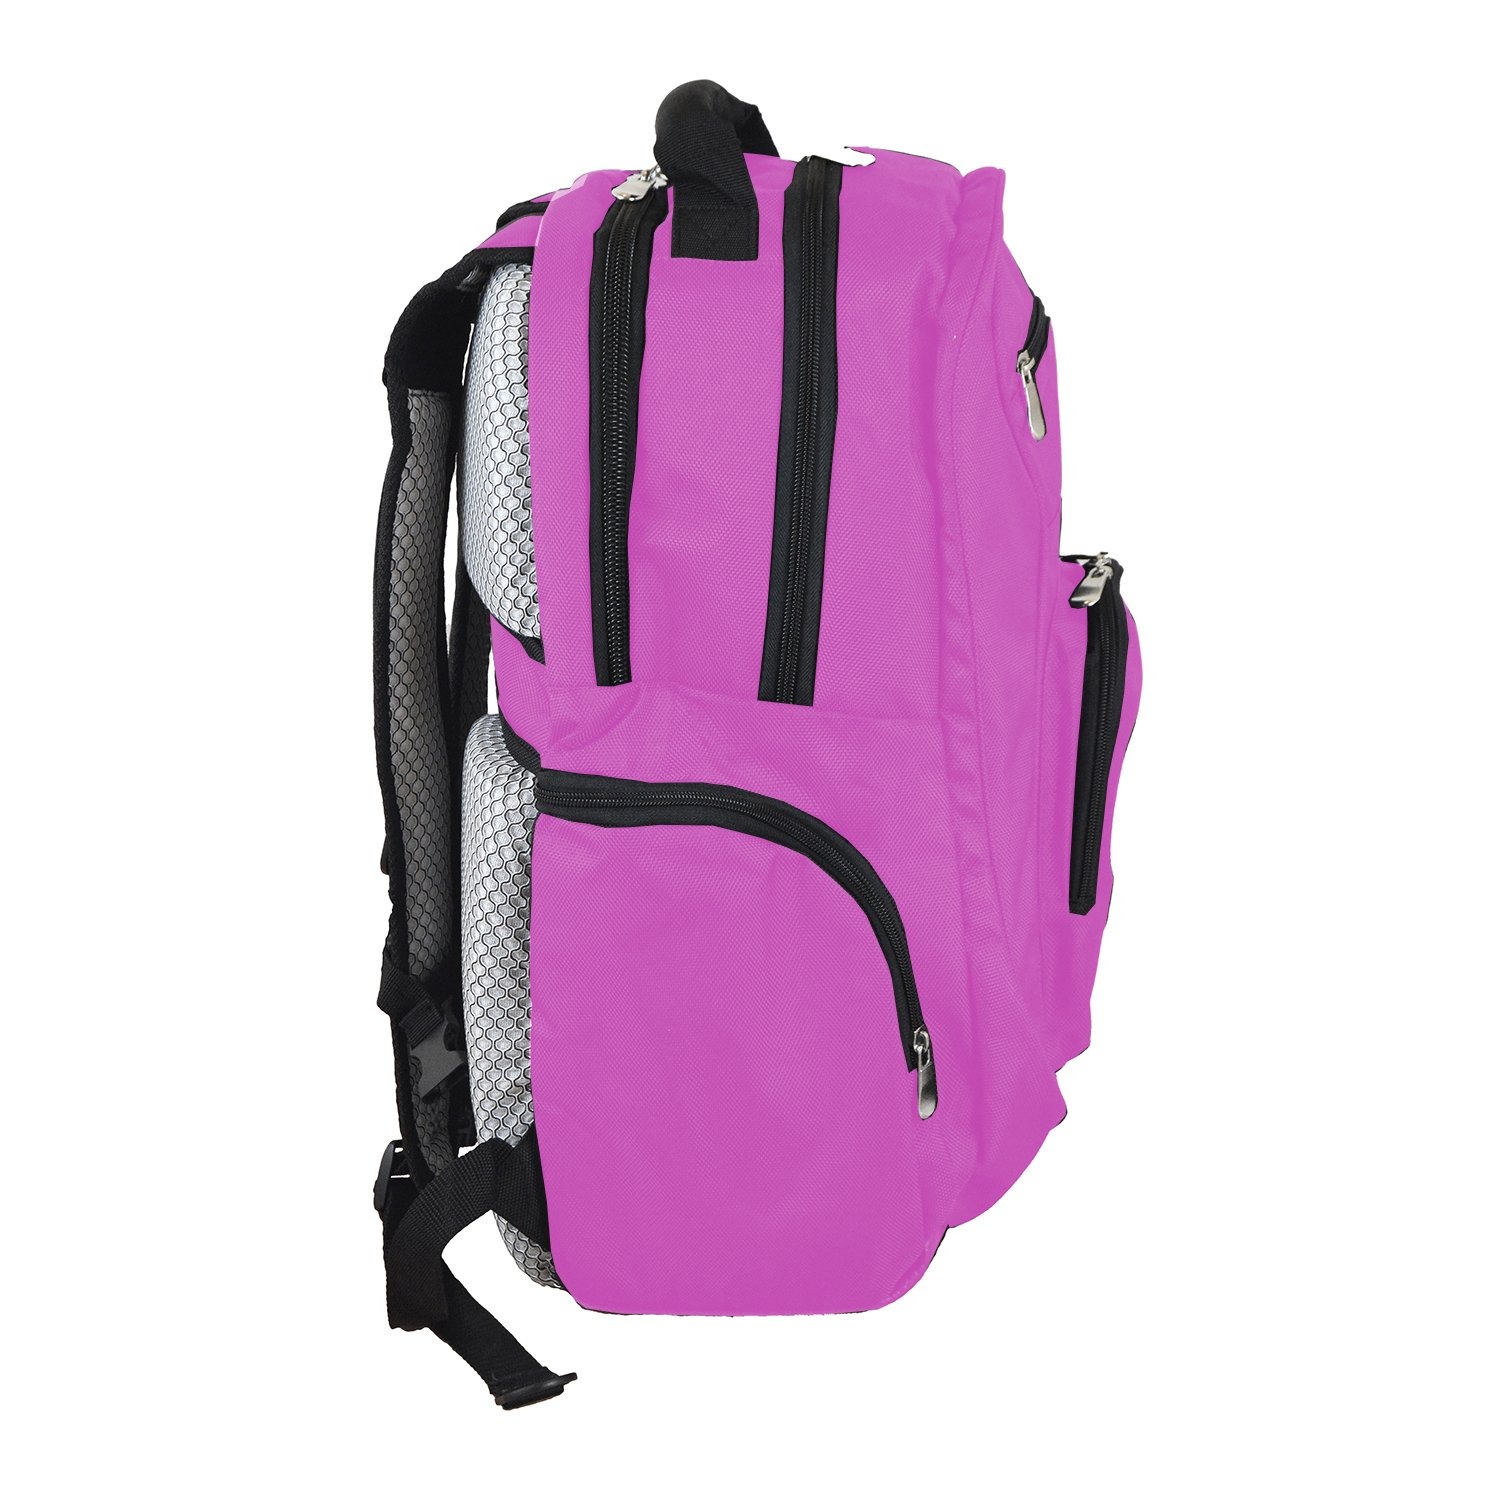 NBA Boston Celtics Voyager Laptop Backpack, 19-inches, Pink by Denco (Image #2)